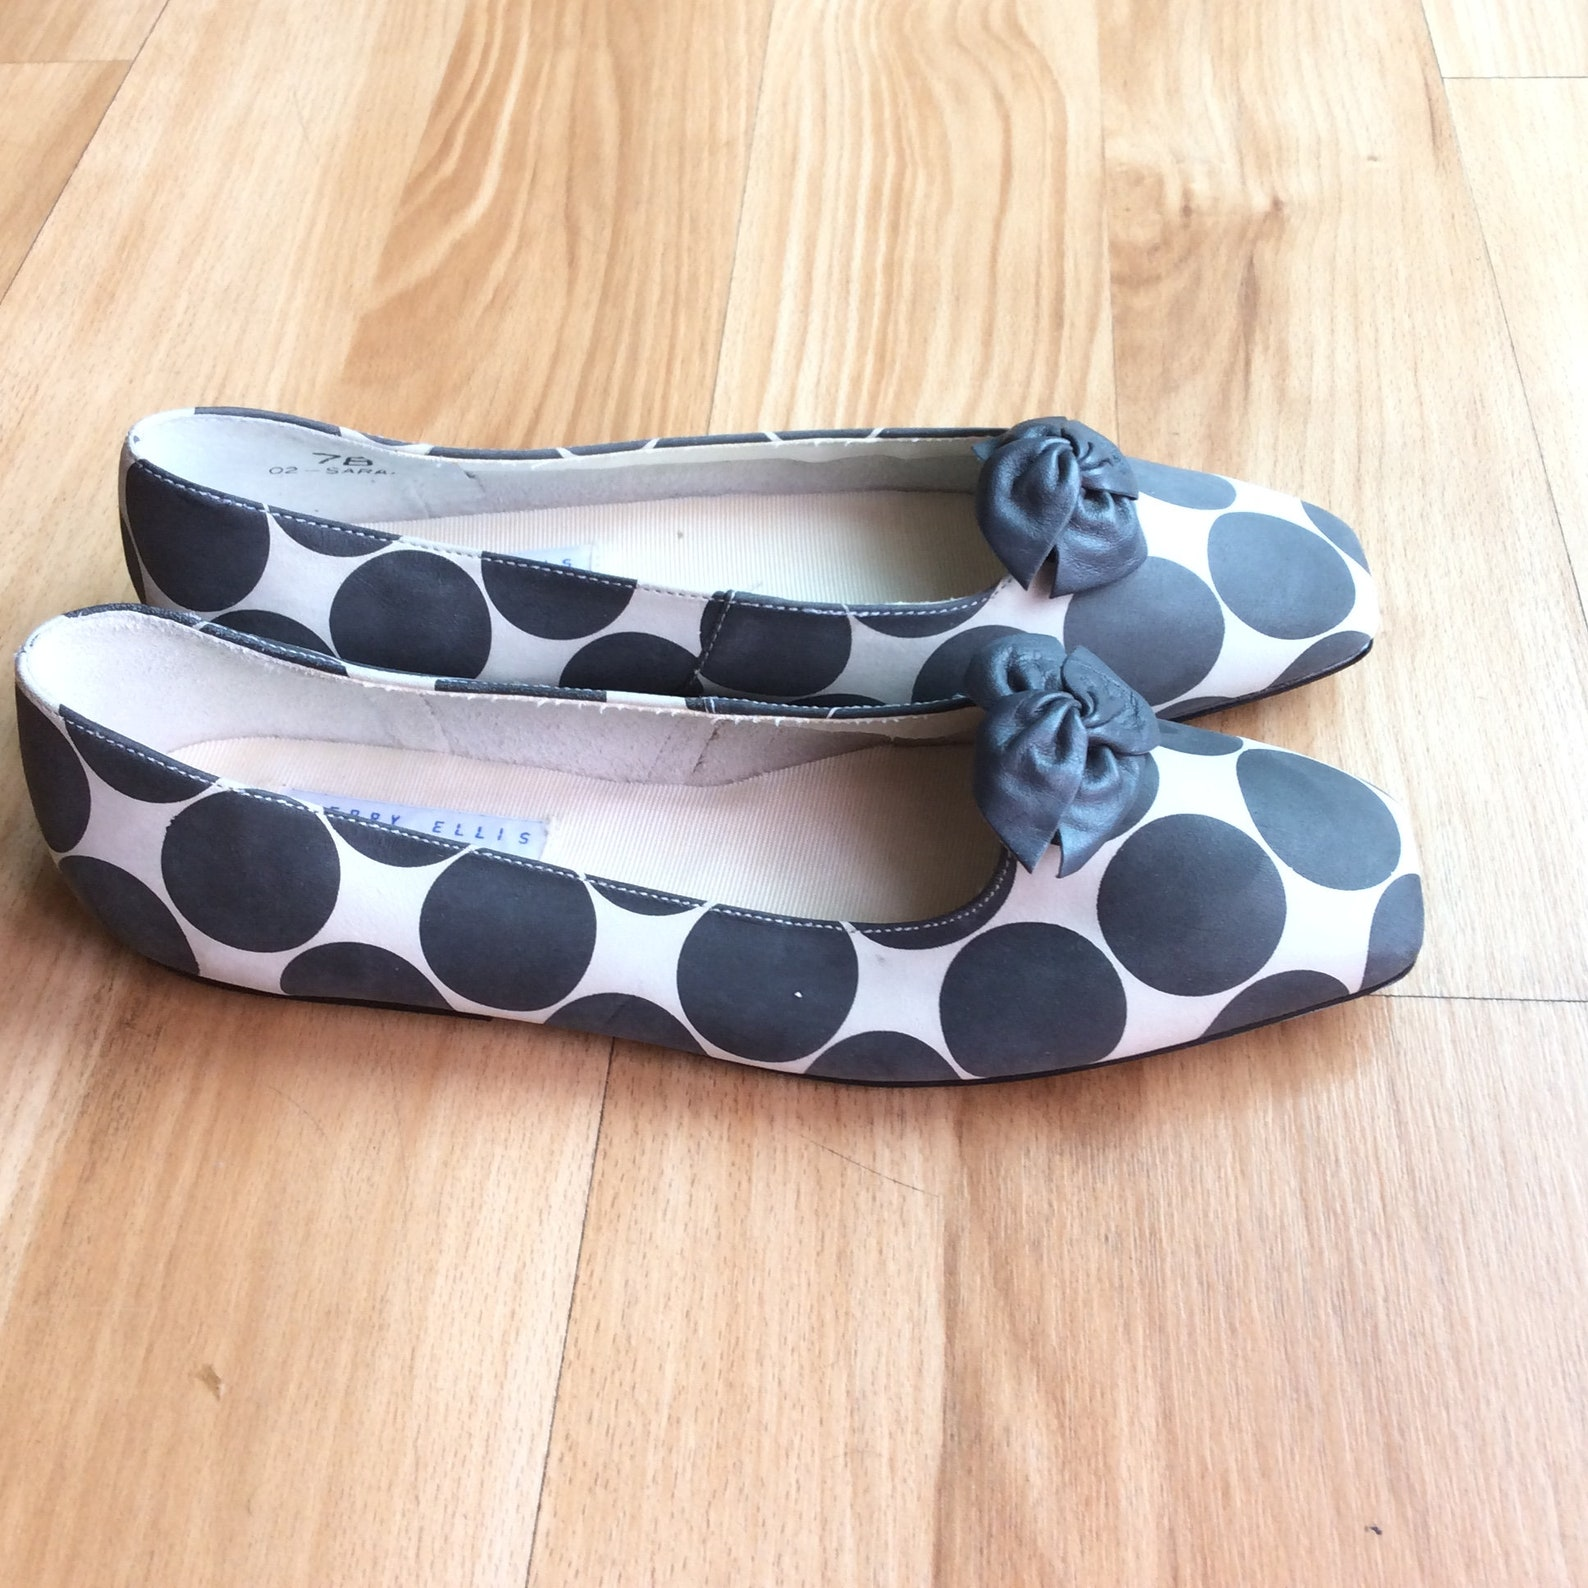 vintage flat new old stock perry ellis mod 80s shoes ballet size 7 narrow funky retro